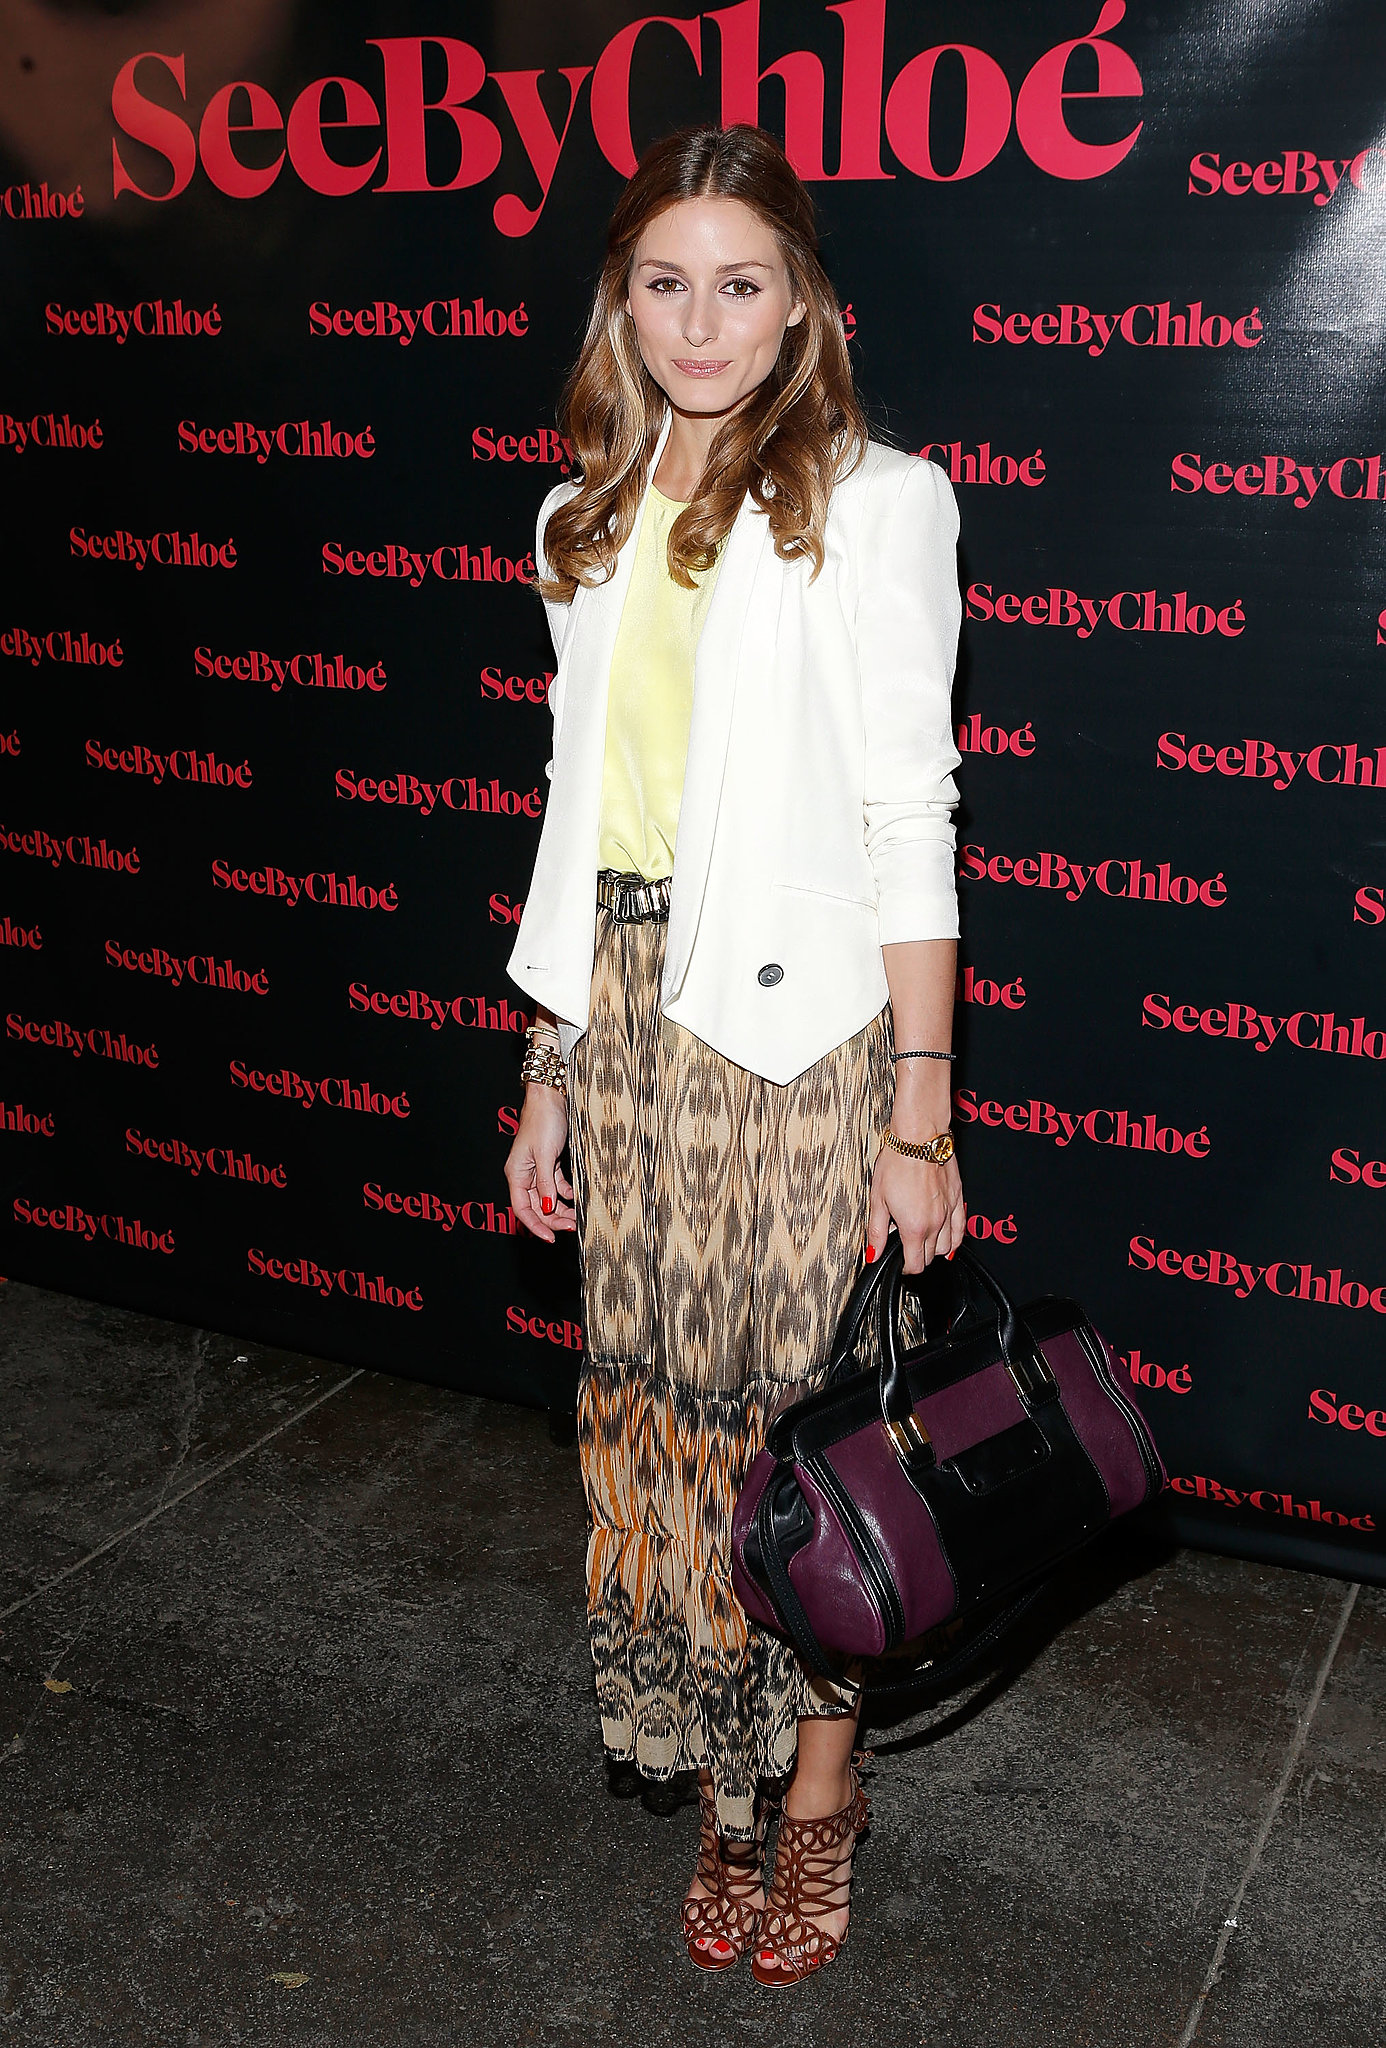 Olivia Palermo at the See by Chloé Resort 2014 collection party in New York.